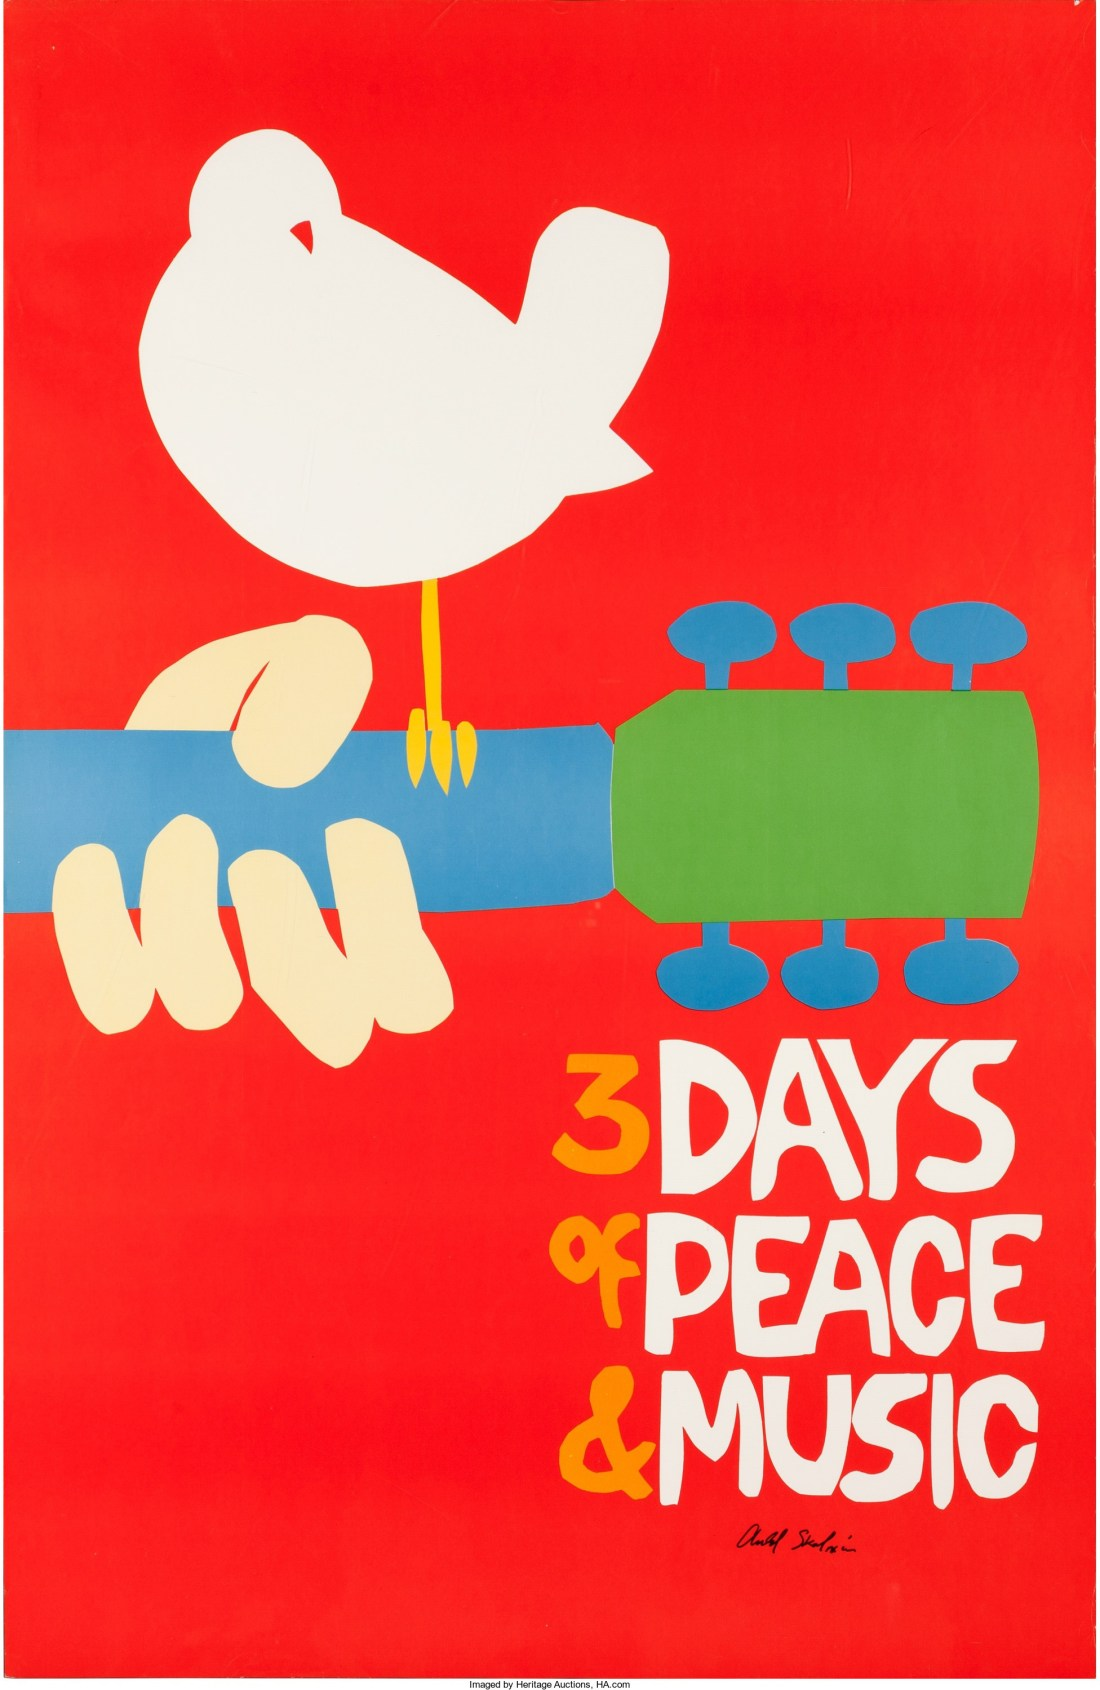 An original 1969 Woodstock concert poster that shows just the artwork--no small text--and is signed by Arnold Skolnik, the artist who designed it.